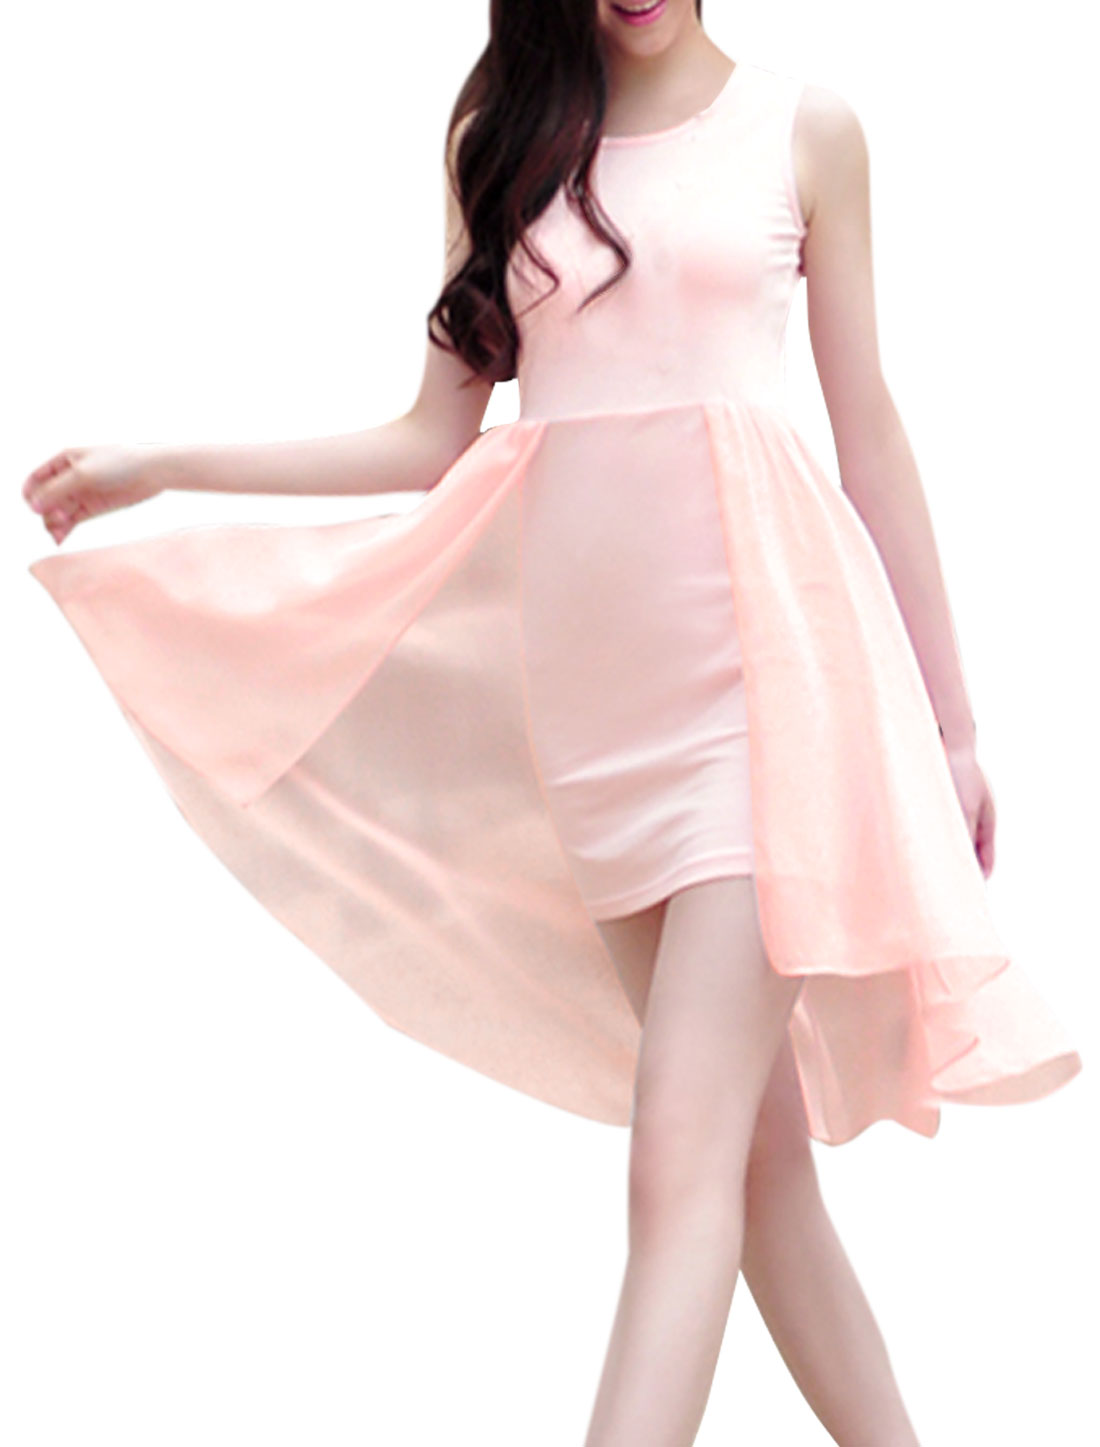 Lady Chic Scoop Neck Semi-sheer Layered Light Pink Dress XS